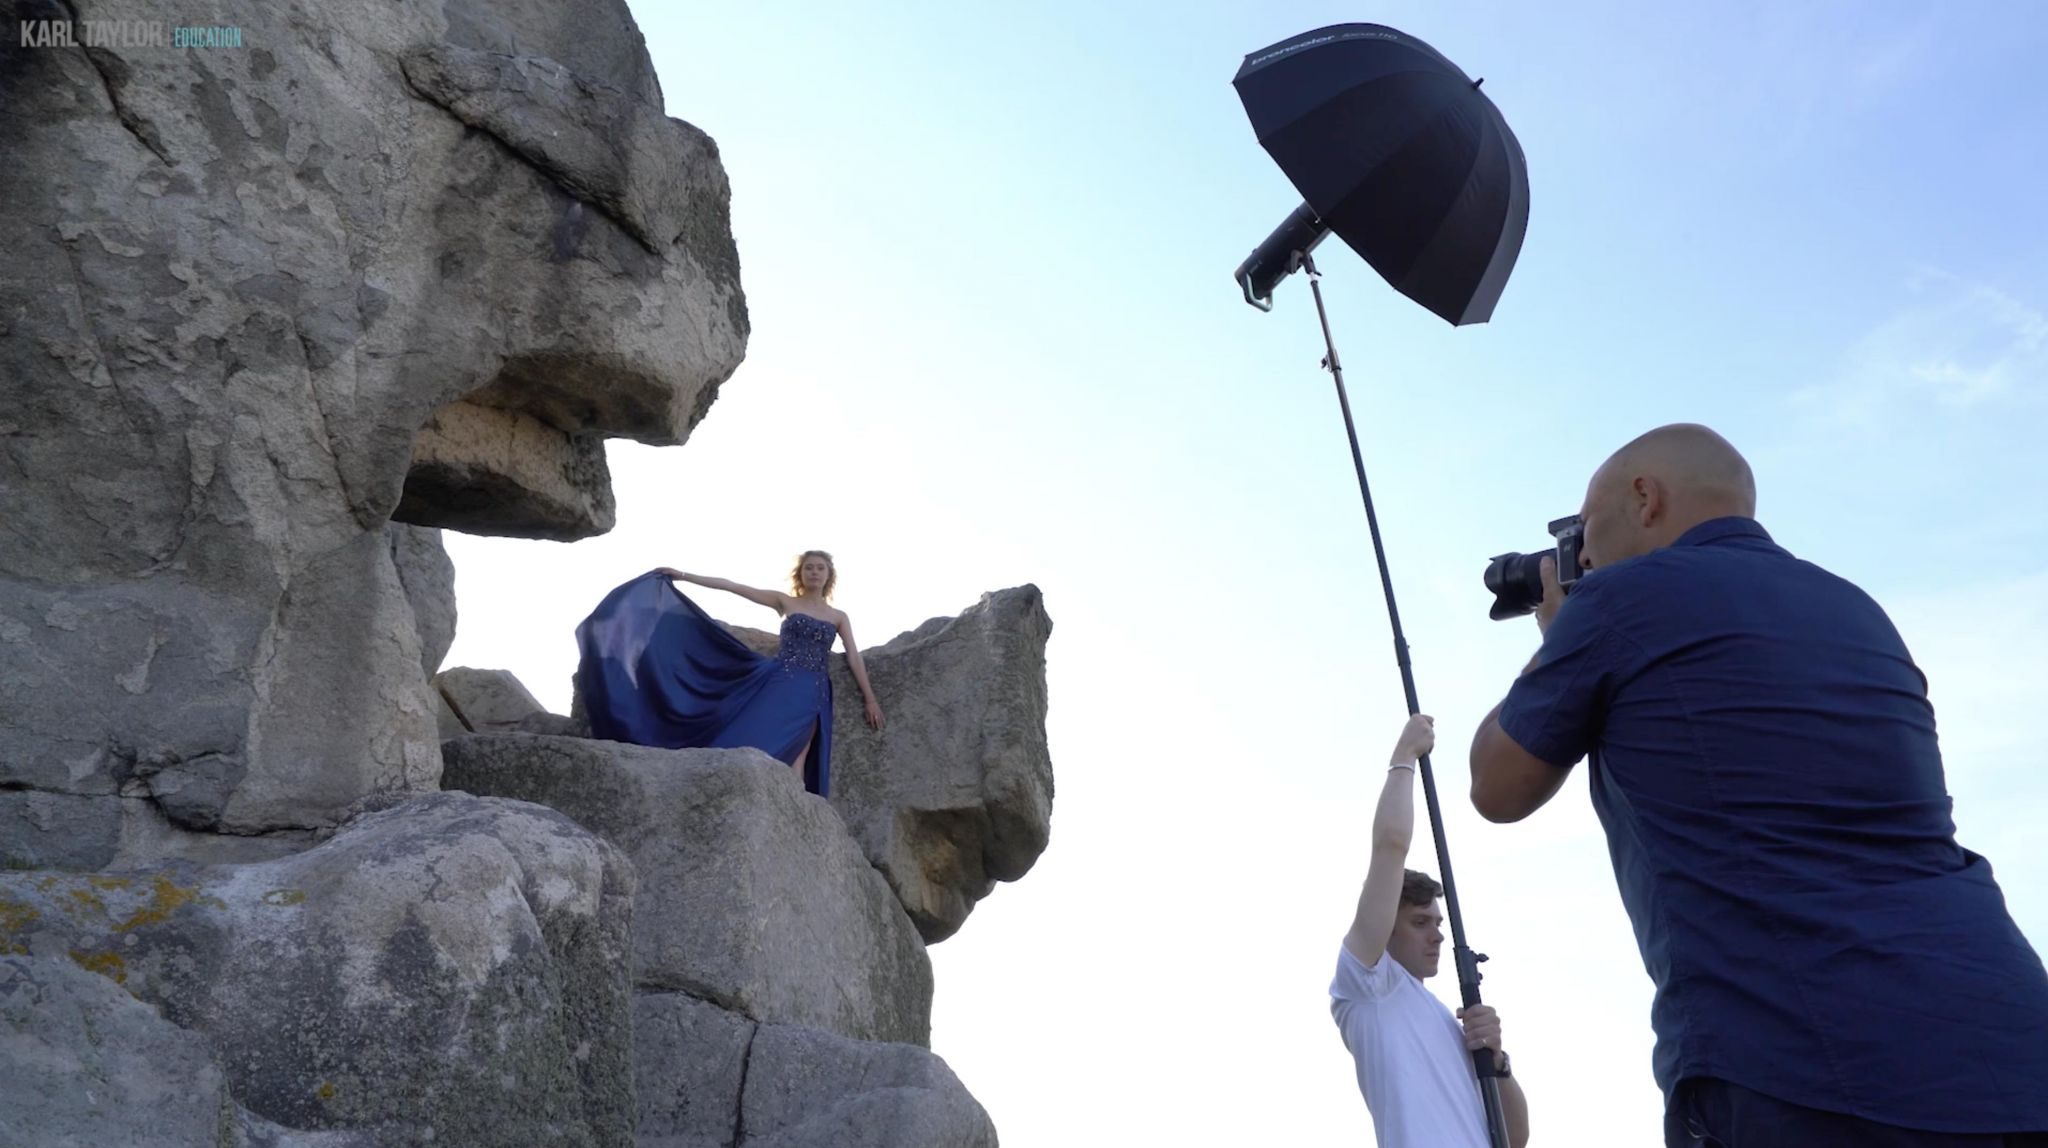 X1D Hasselblad Camera Photography Review (and location Fashion shoot!) – Part 2